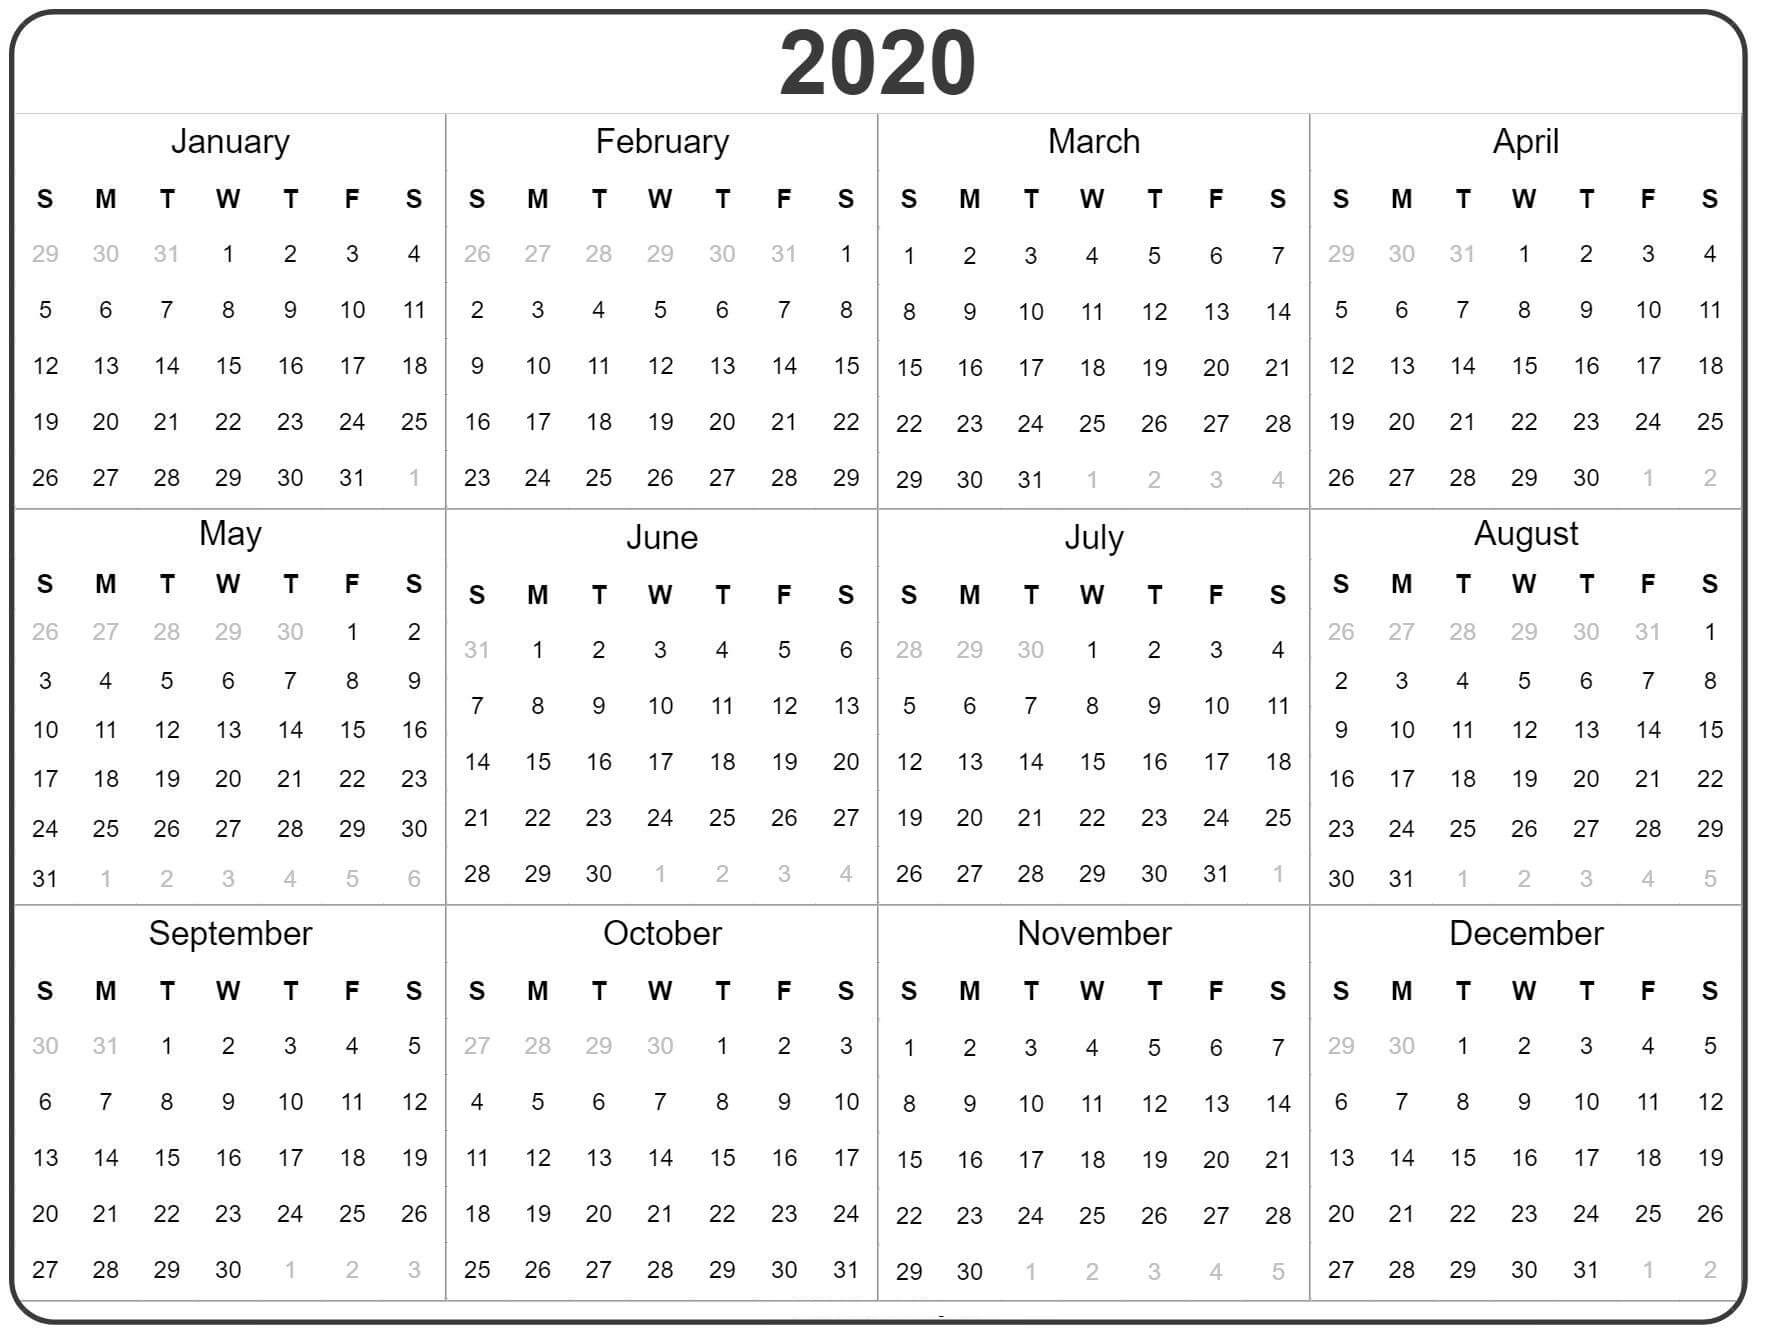 Free Yearly Calendar 2020 With Notes - 2019 Calendars For Impressive Free 2020 Calendar At A Glance